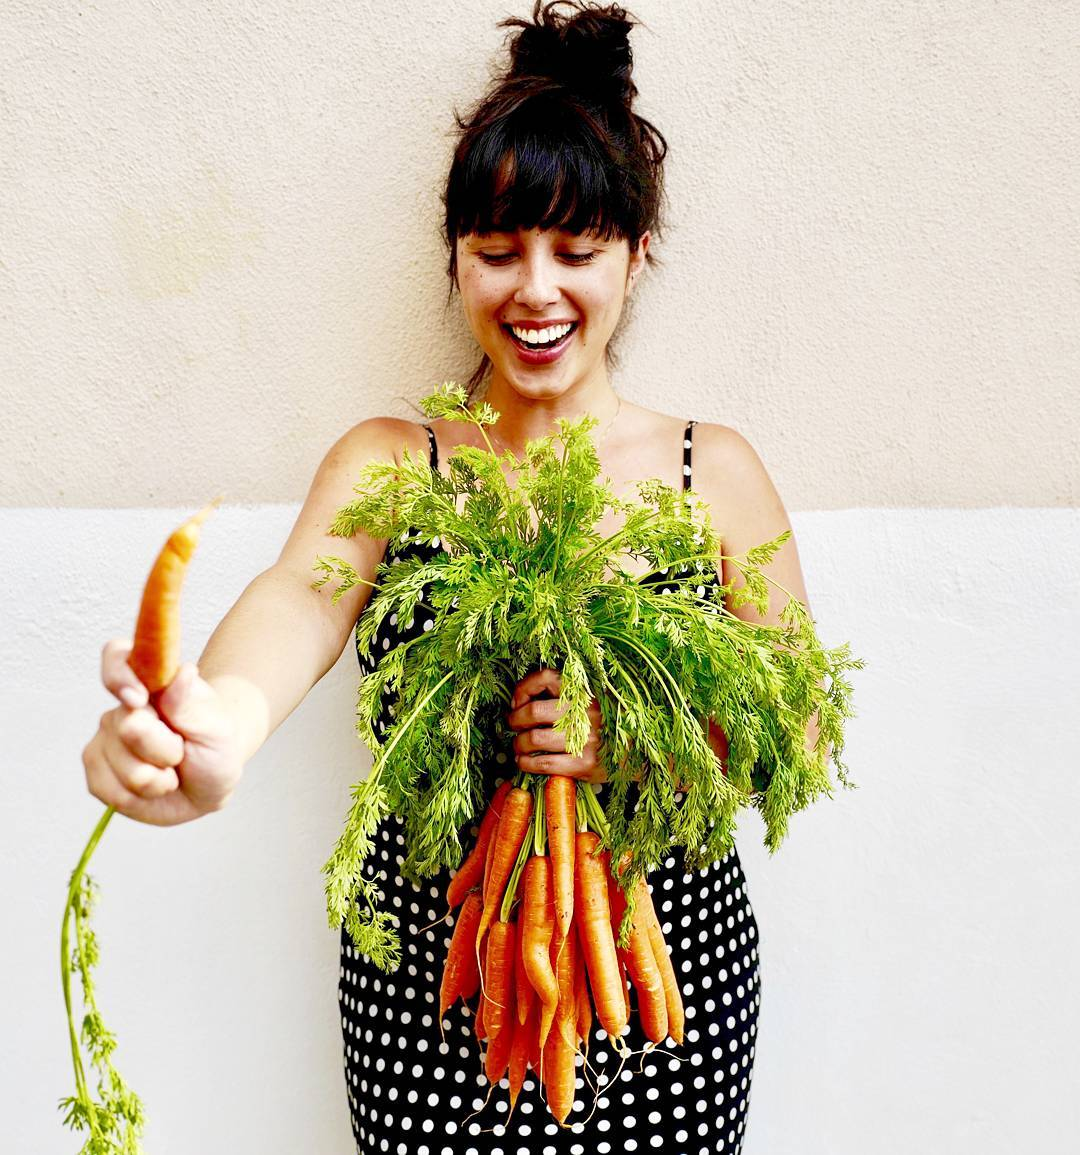 Hemsley & Hemsley instagram